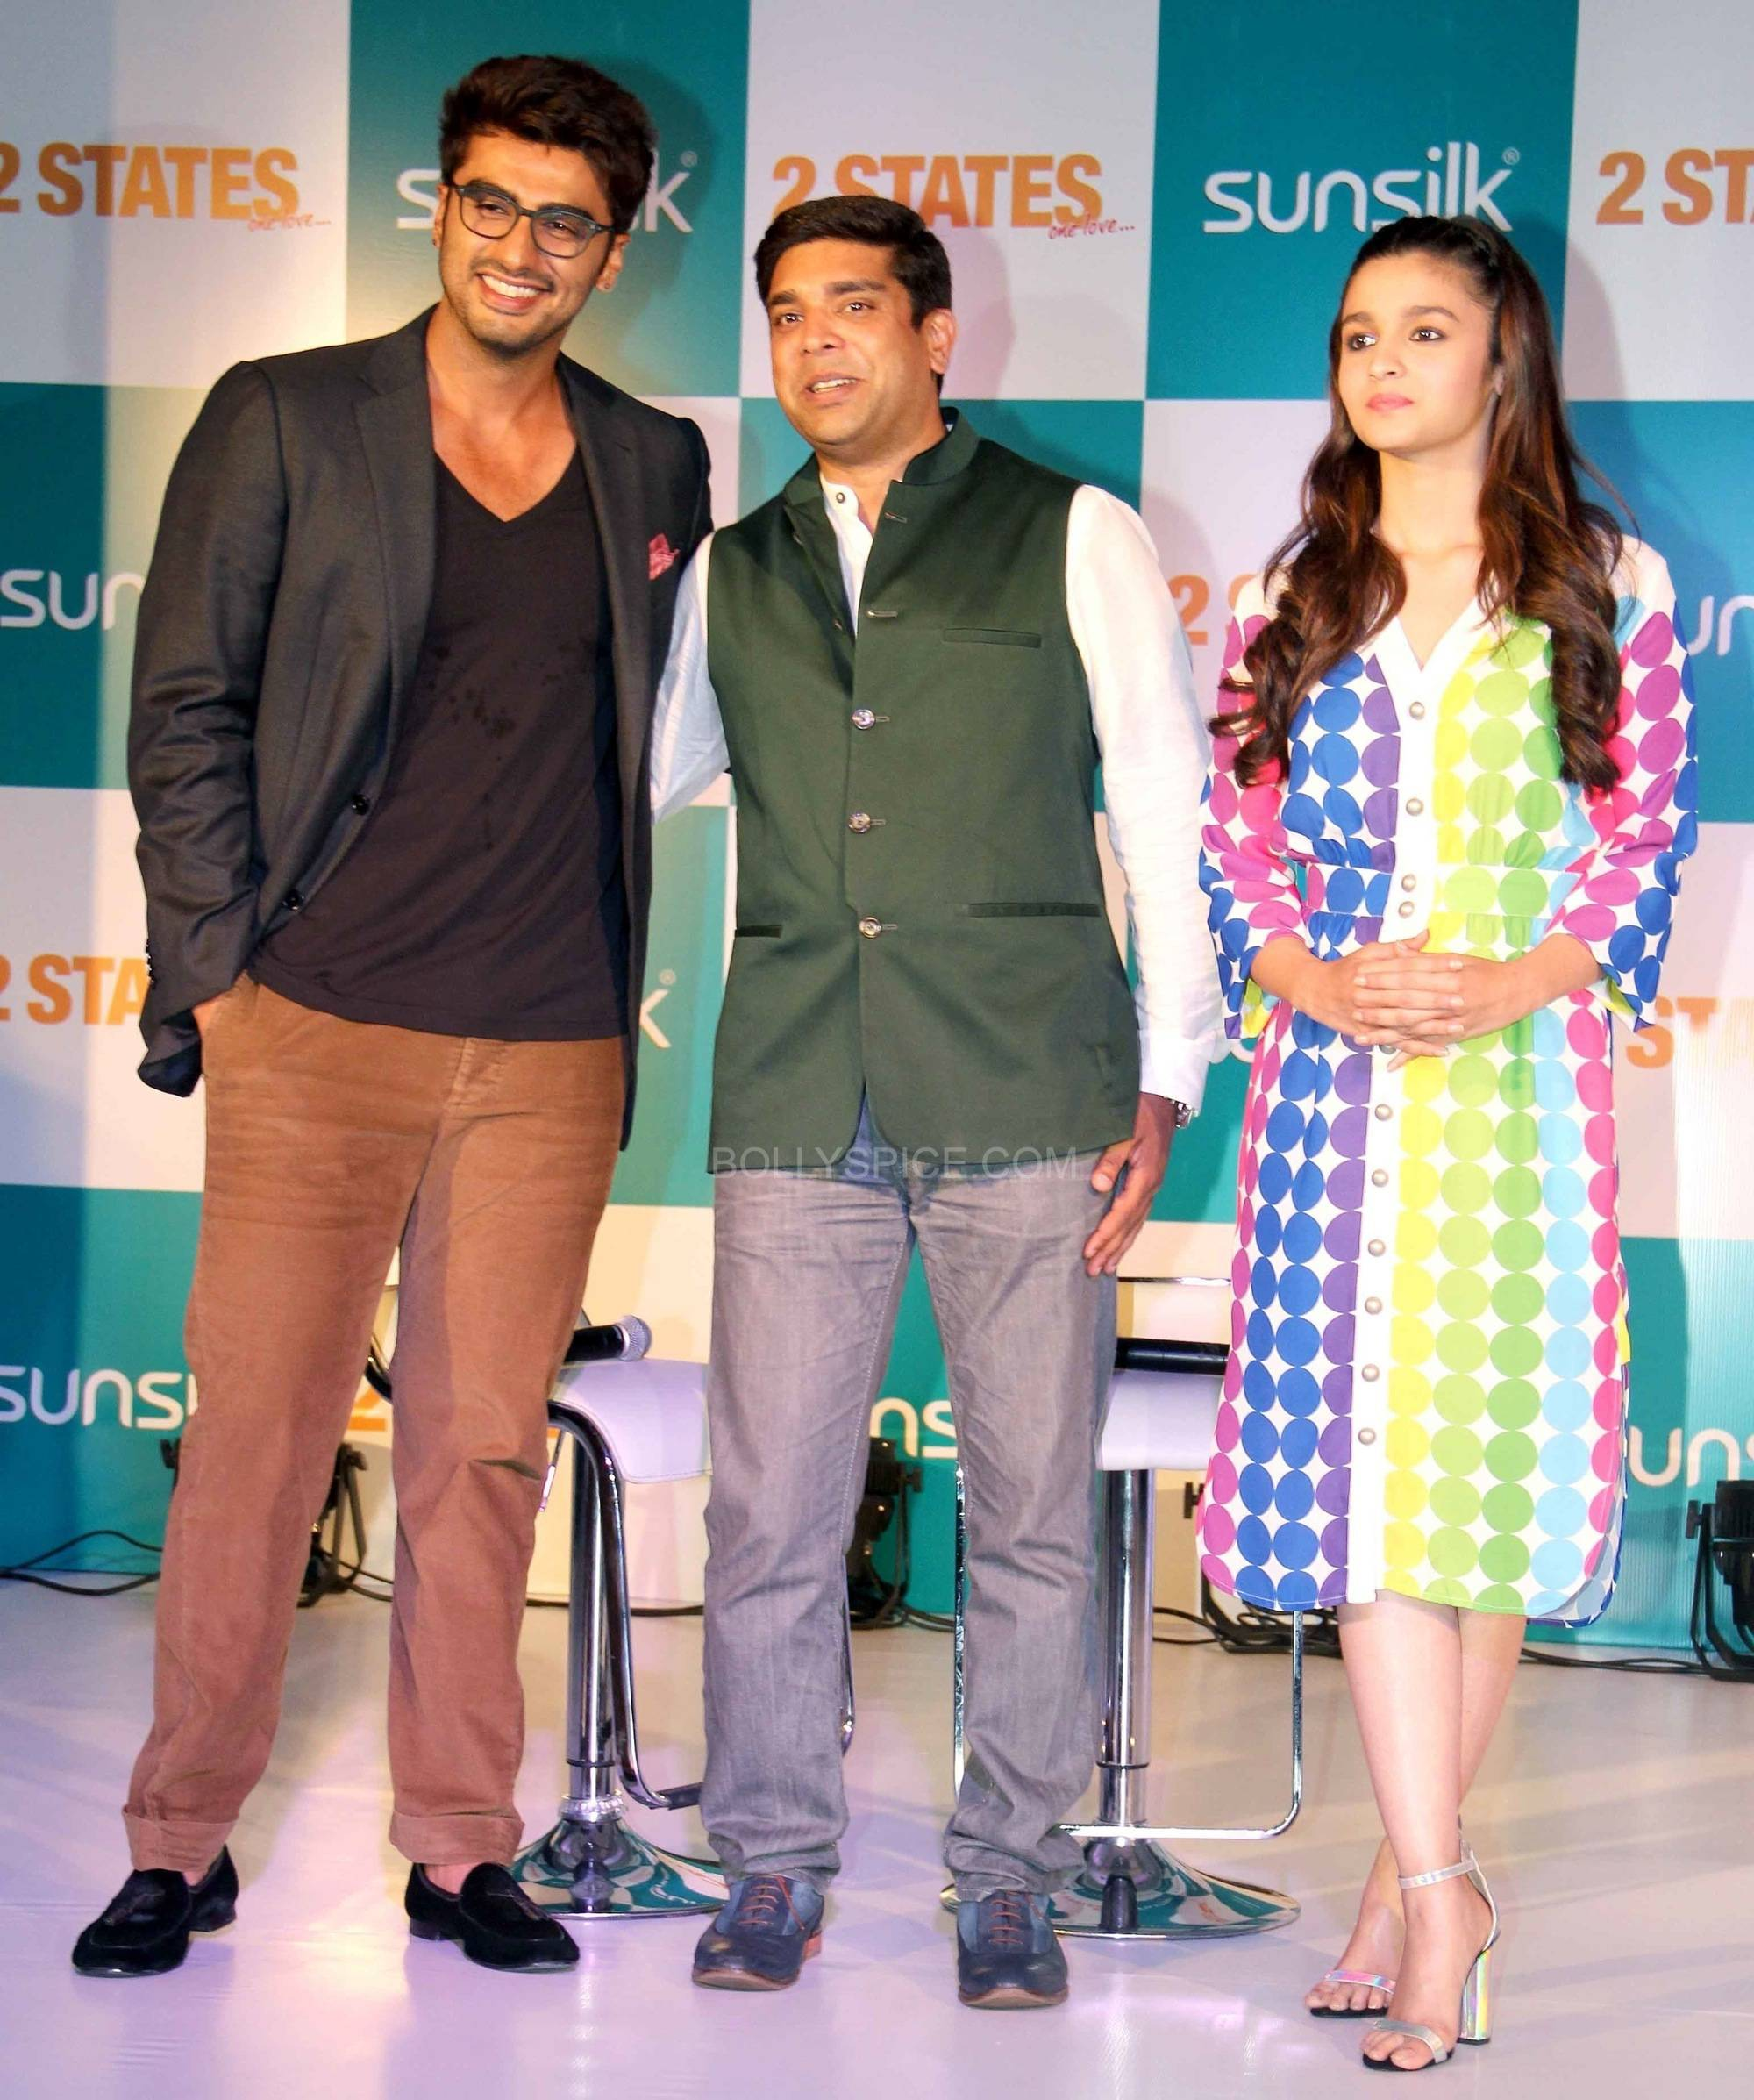 2 States-Sunsilk Press Conference with Alia Bhatt and Arjun